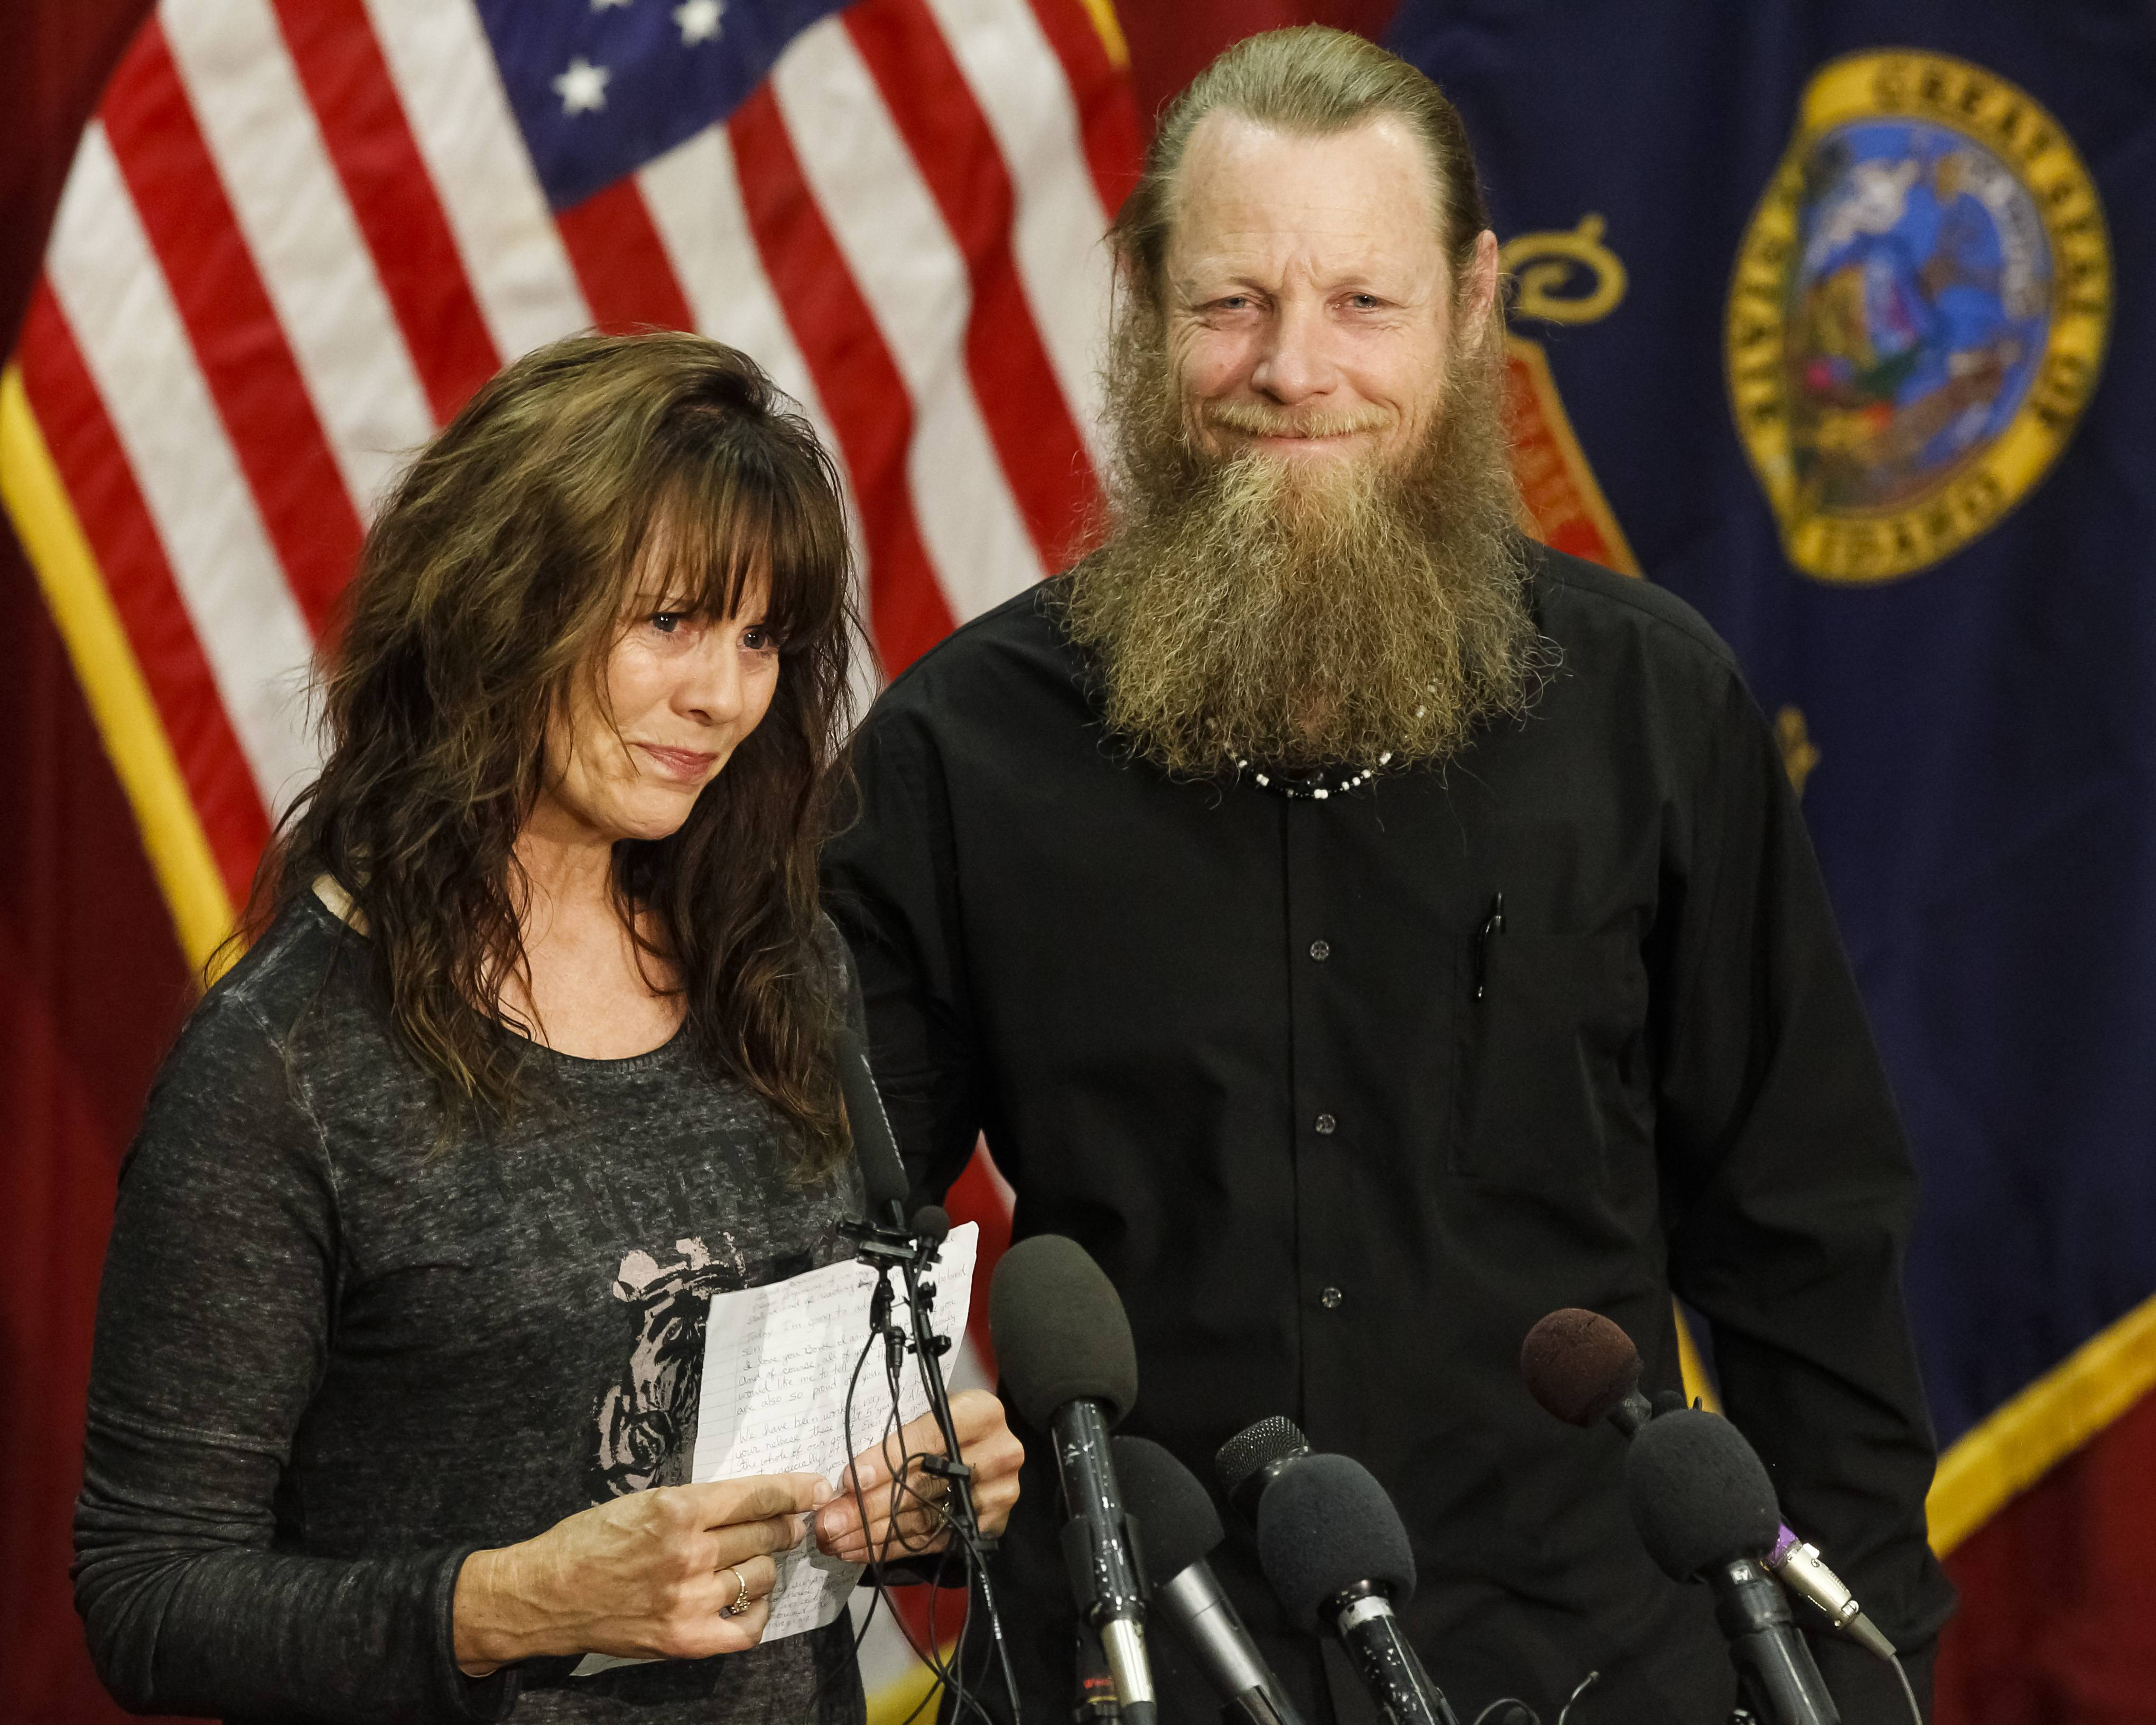 Jani and Bob Bergdahl speak to the media during a press conference at Gowen Field in Boise, Idaho, Sunday. Their son, Sgt. Bowe Bergdahl is back in American hands, freed for five Guantanamo terrorism detainees.